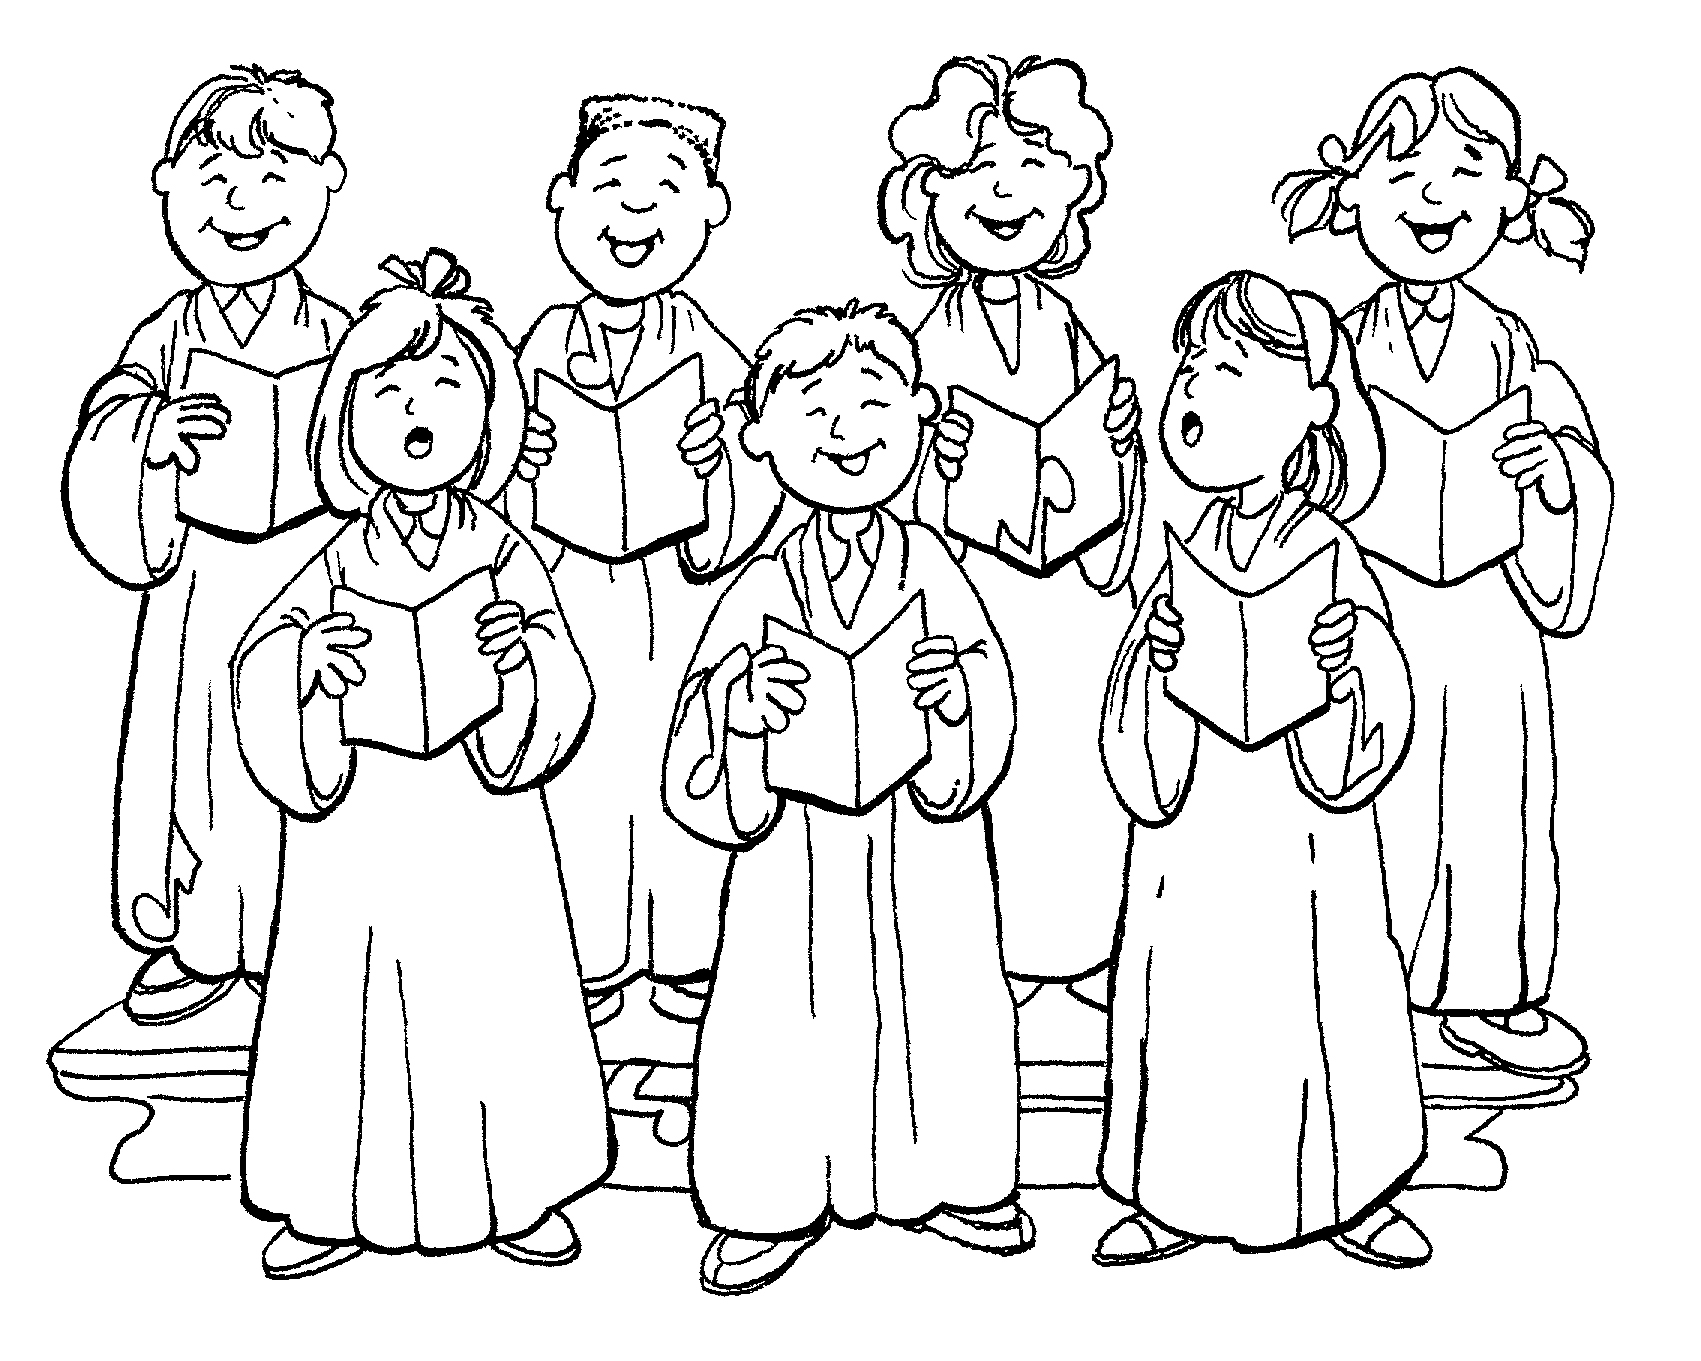 coloring pages chorus - photo#3